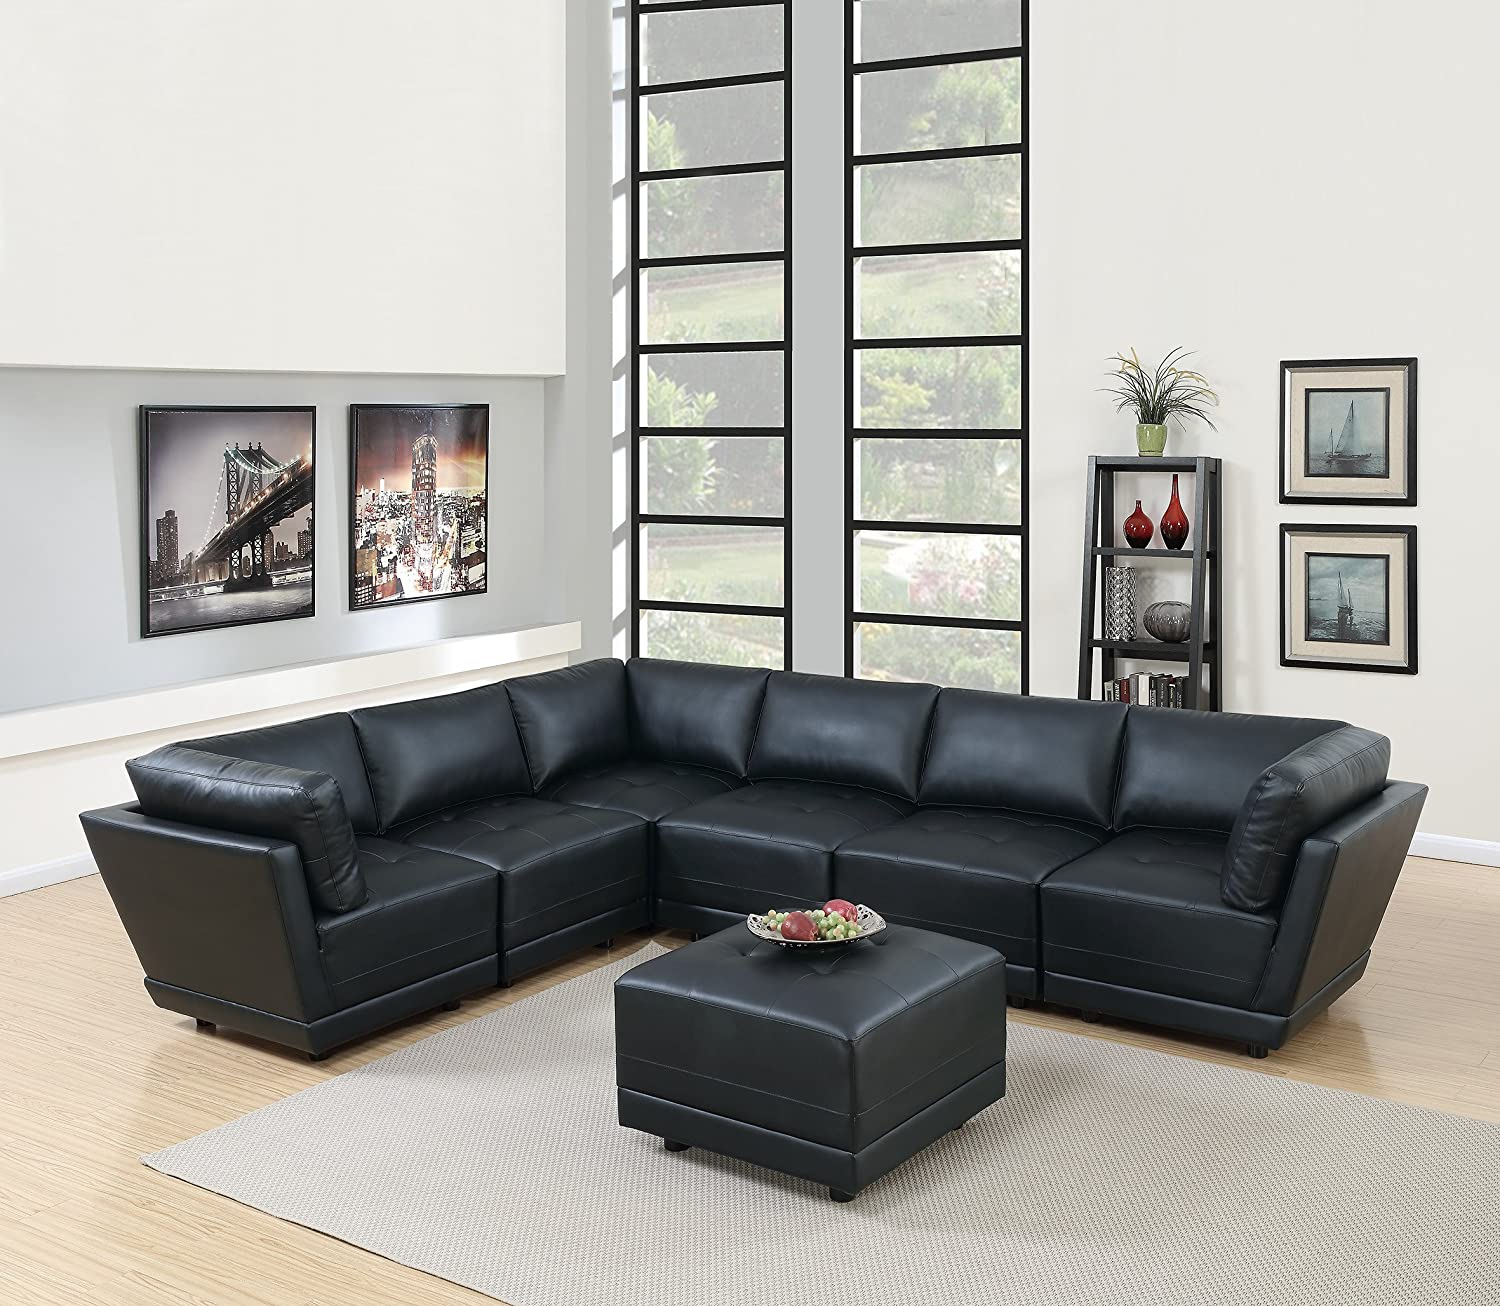 Amazon Modern Black Bonded Leather Sectional Sofa Tufted